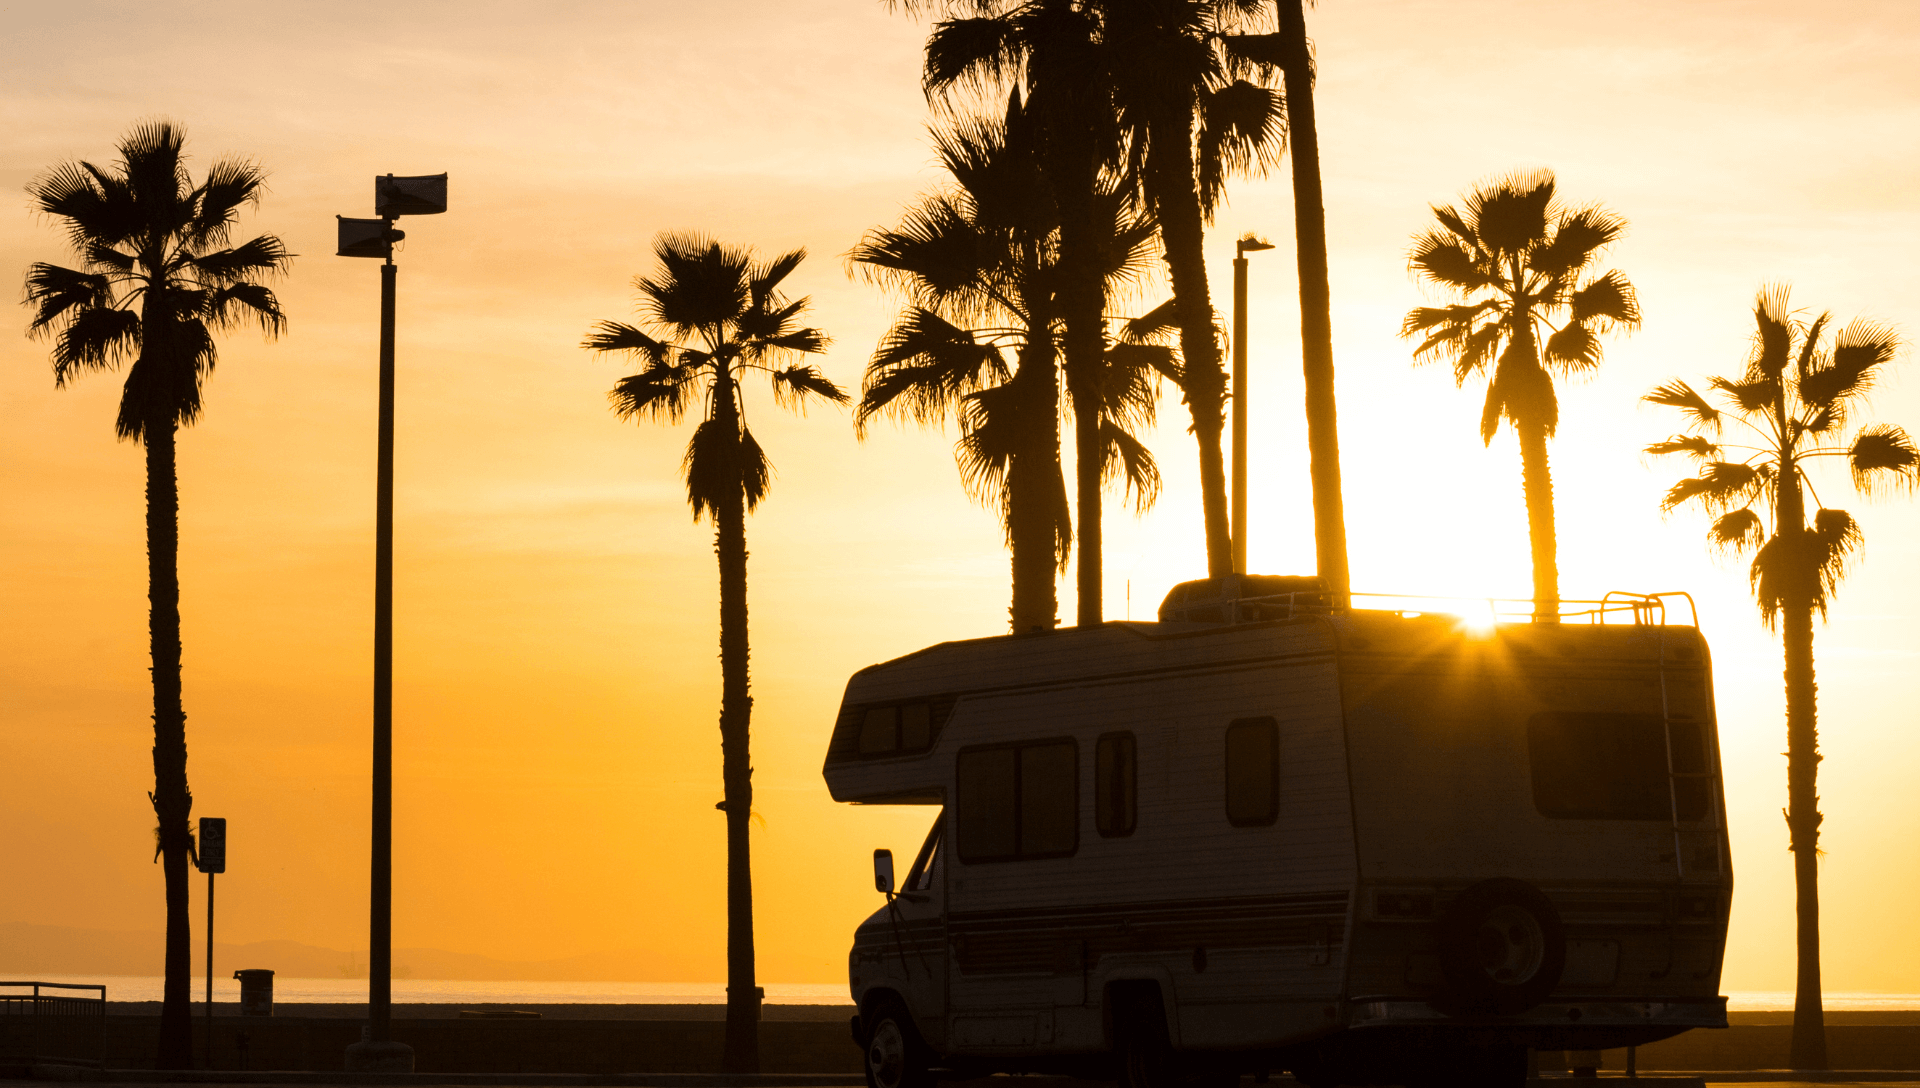 A motorhome is parked under palm trees beneath a bright orange and yellow sunset sky.